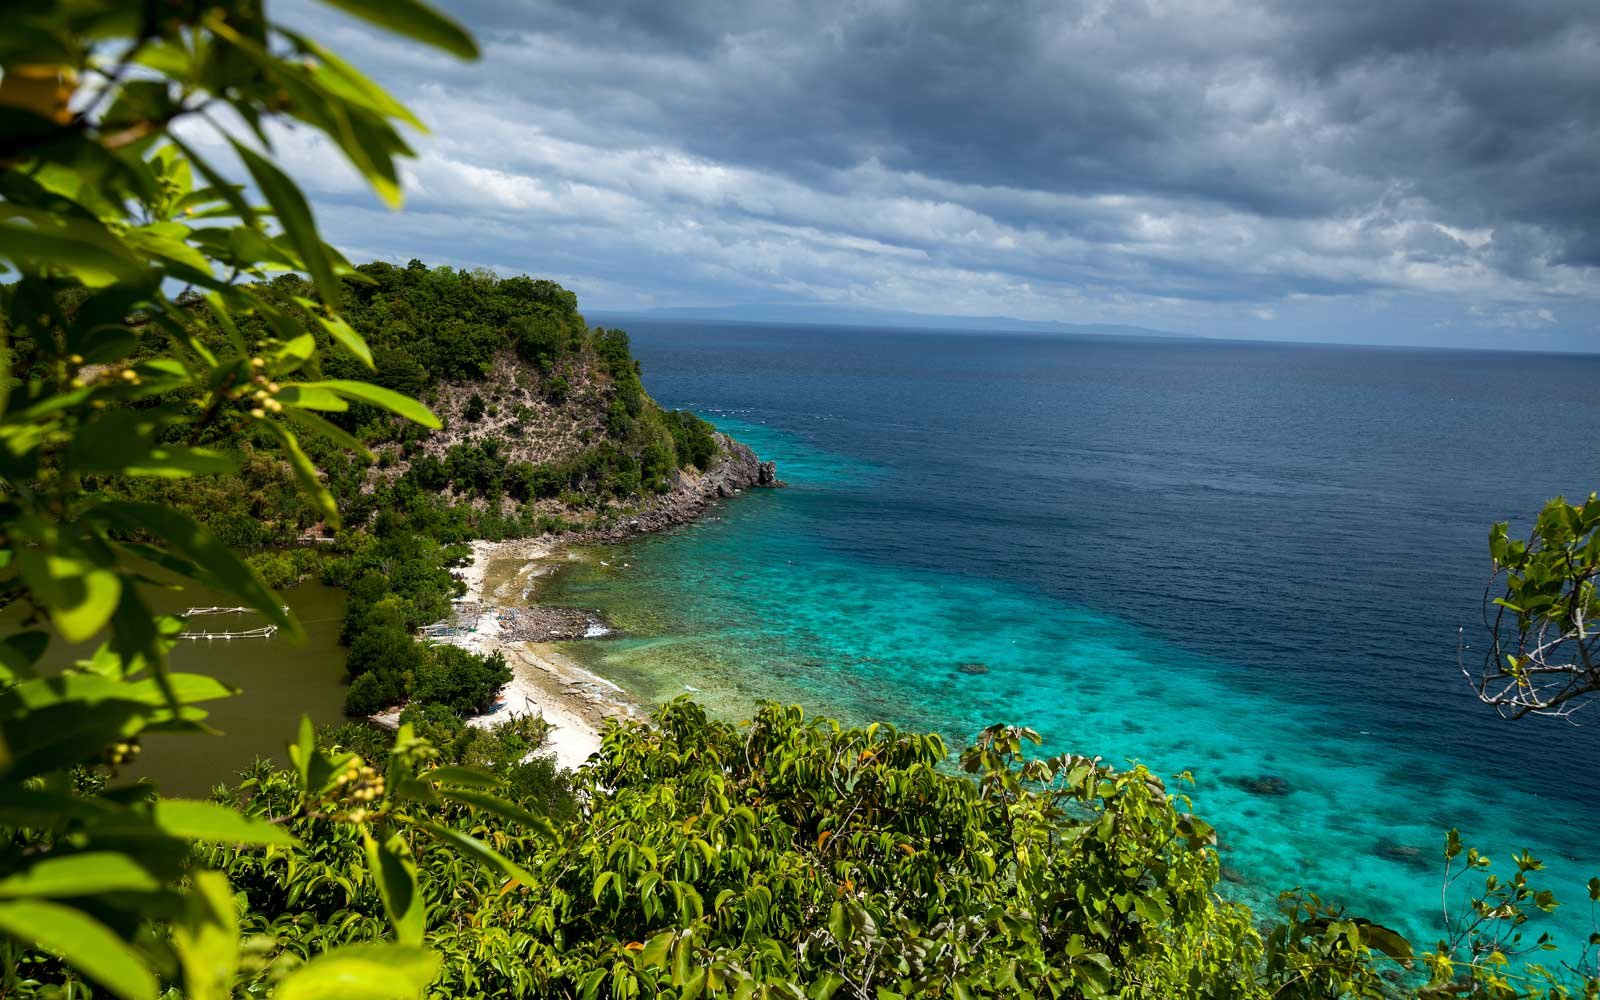 View from top of a hill to Apo Reef Natural Park. Apo island, Philippines